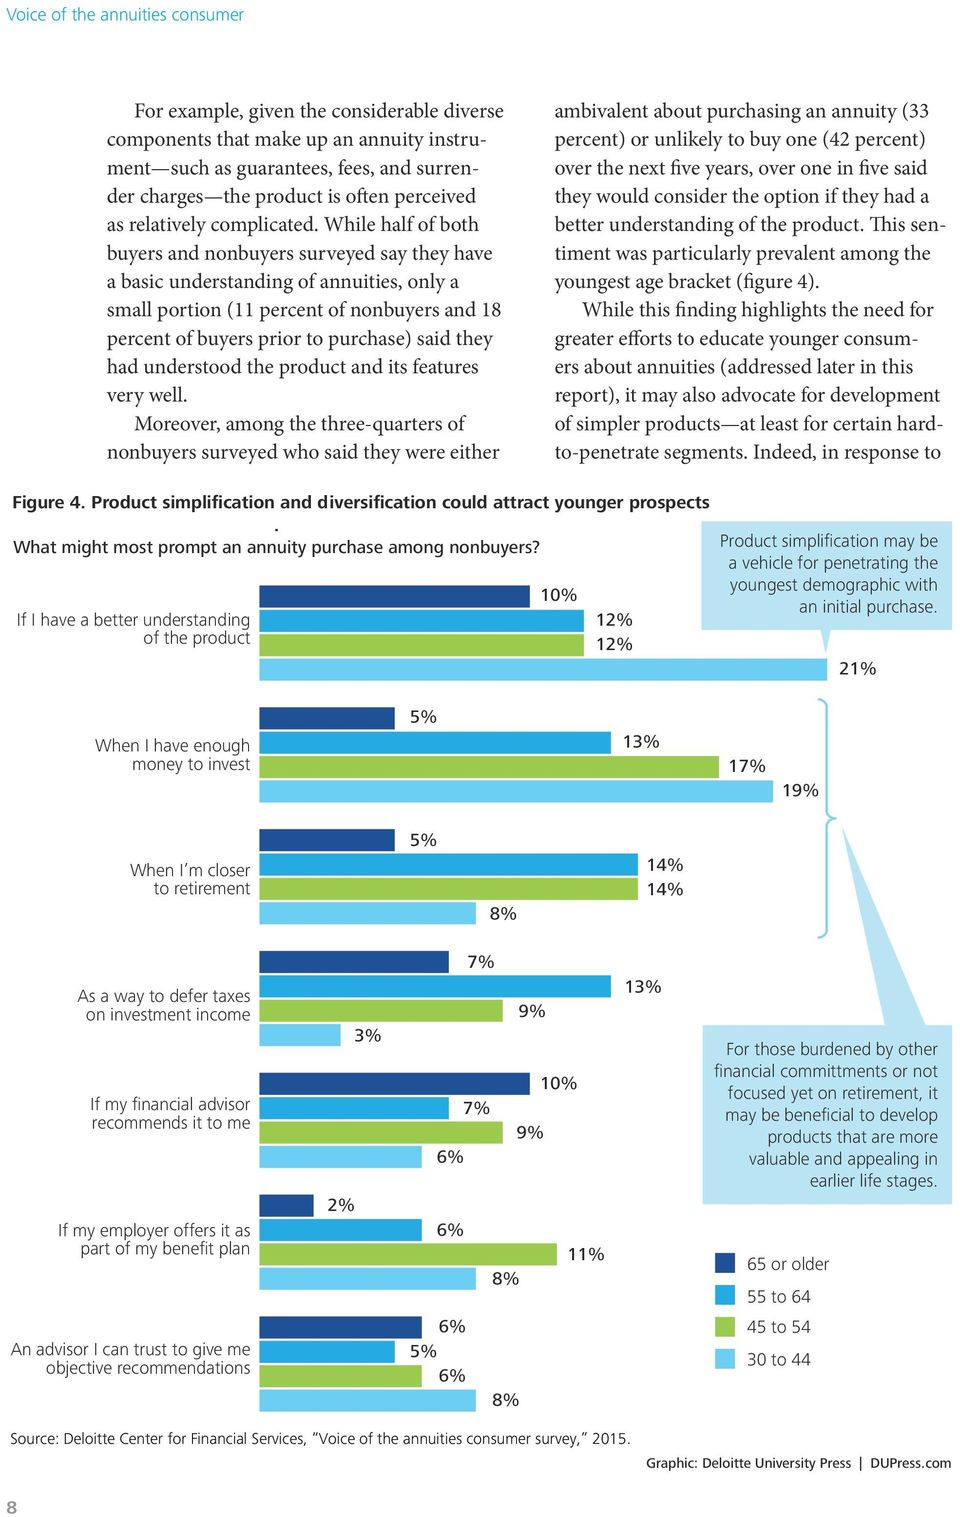 While half of both buyers and nonbuyers surveyed say they have a basic understanding of annuities, only a small portion (11 percent of nonbuyers and 18 percent of buyers prior to purchase) said they